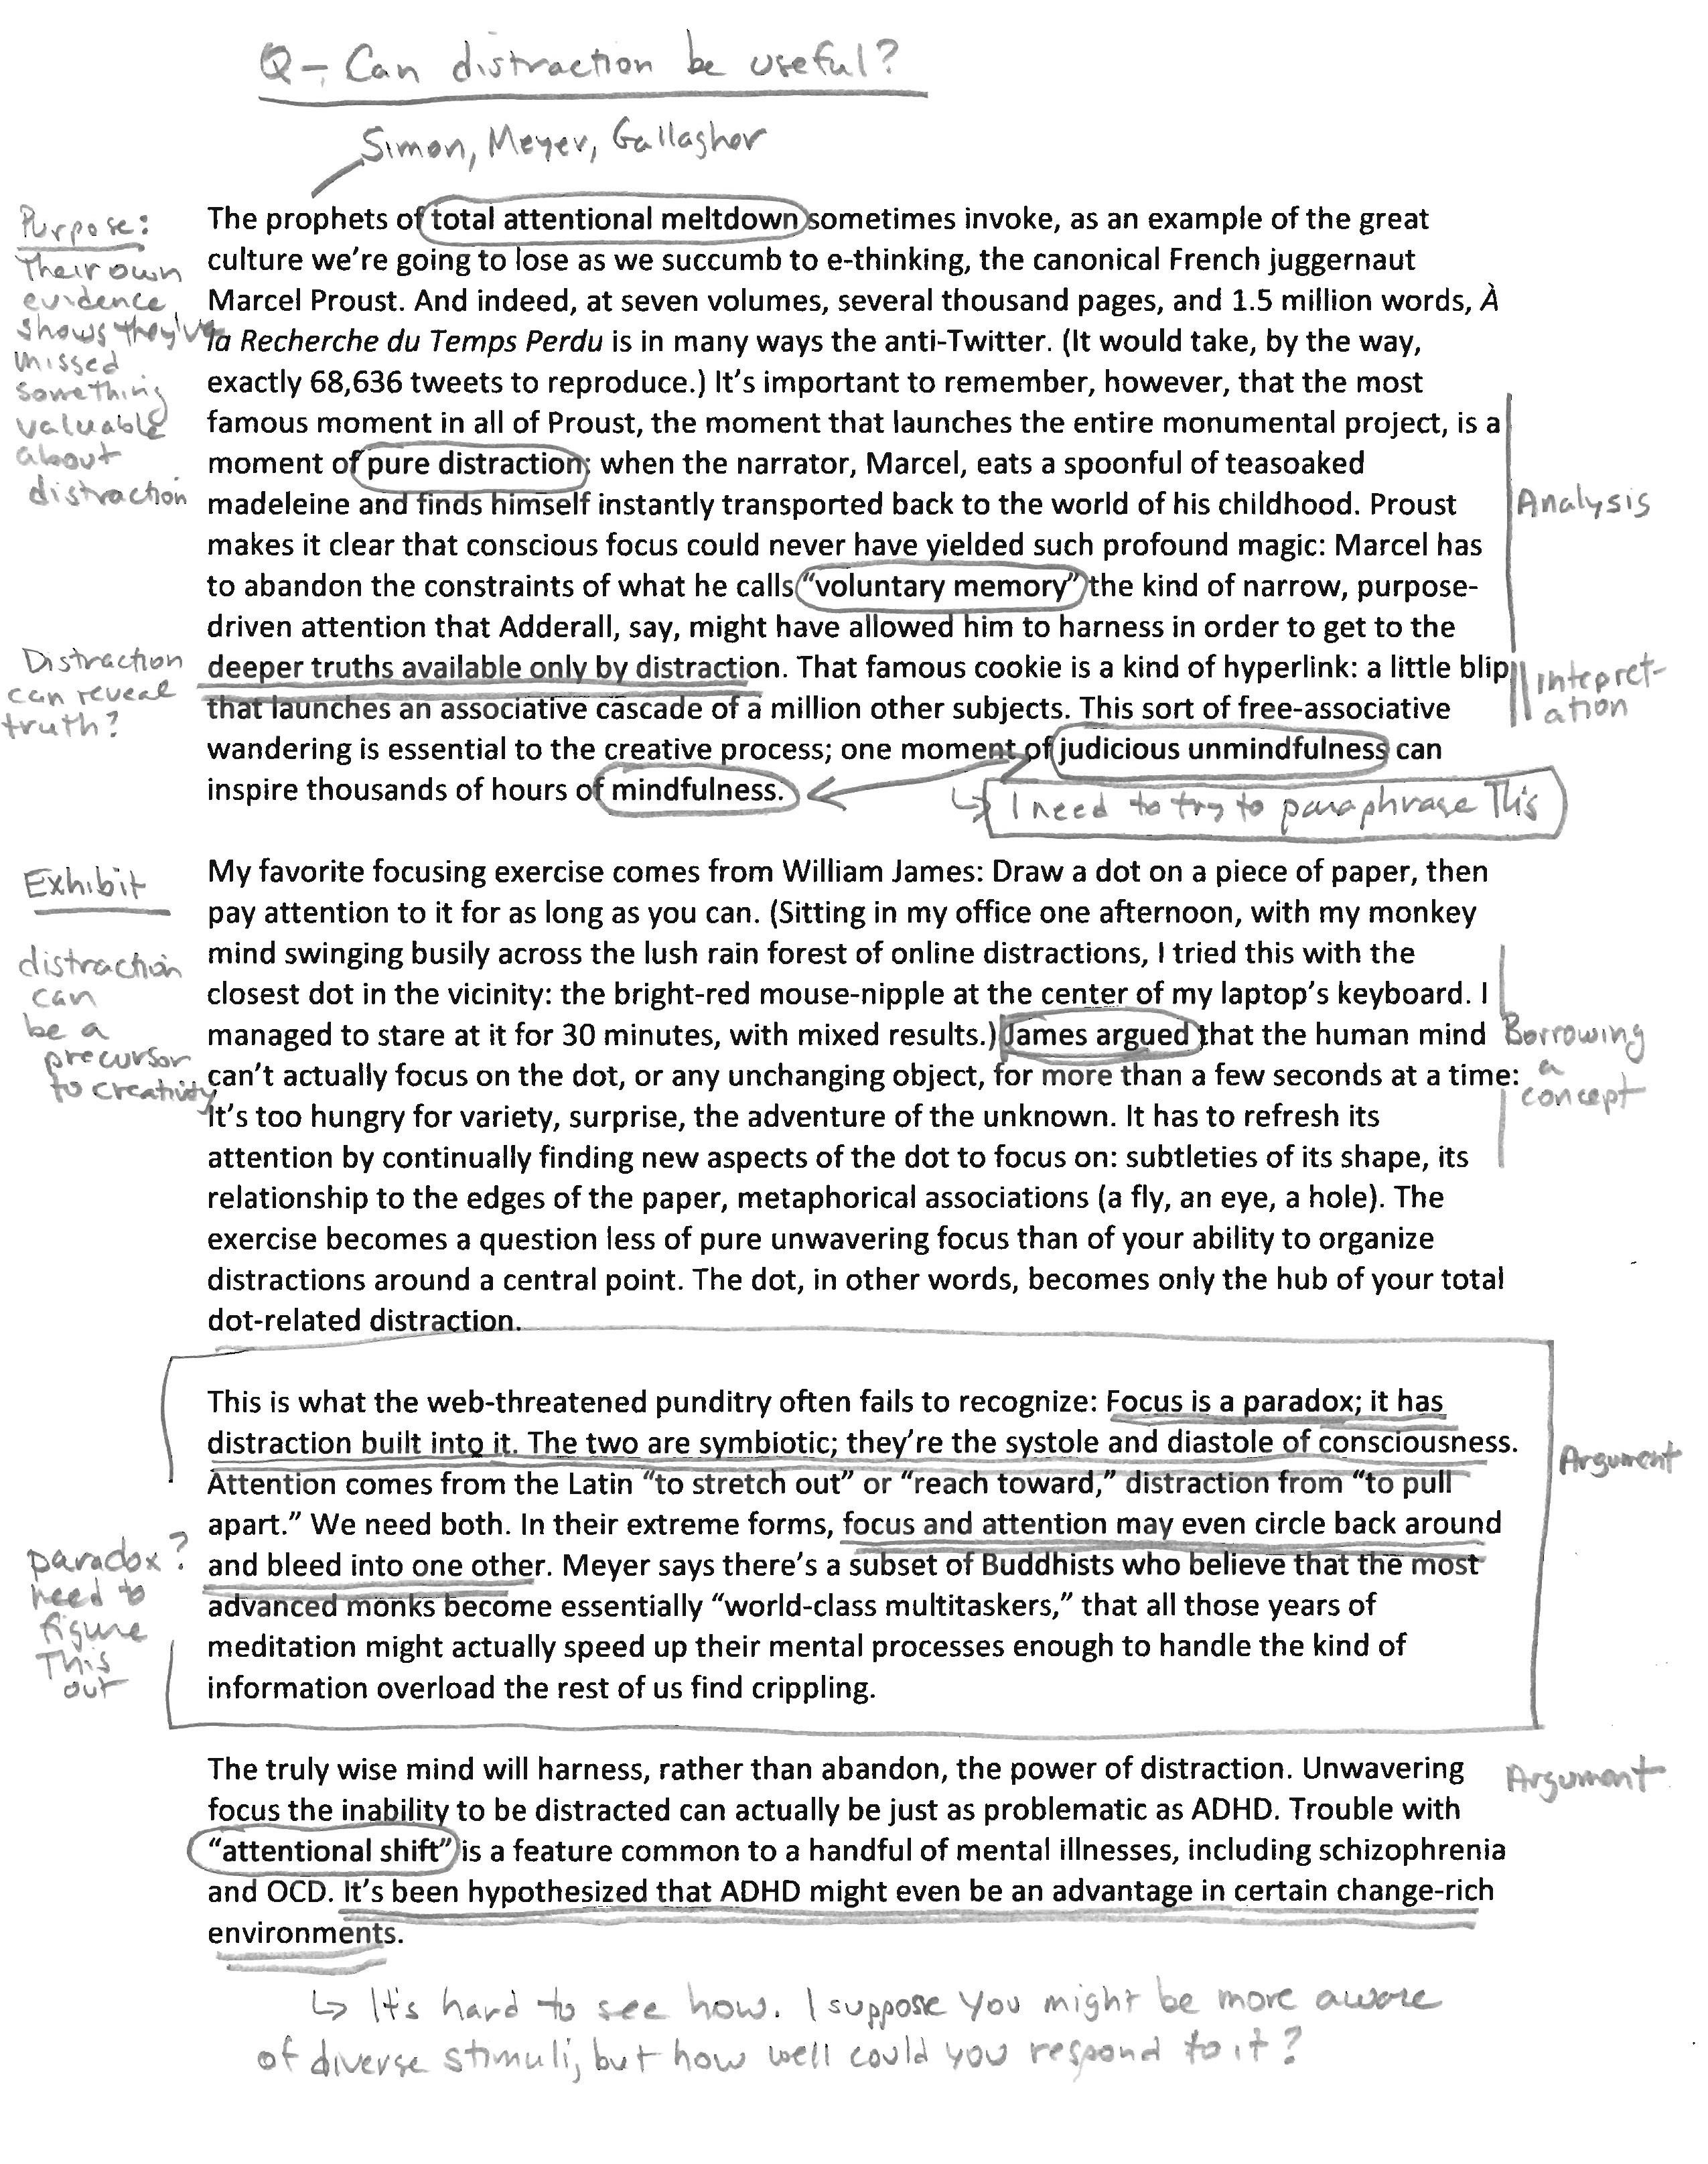 Photo of a reading with a lot of annotations